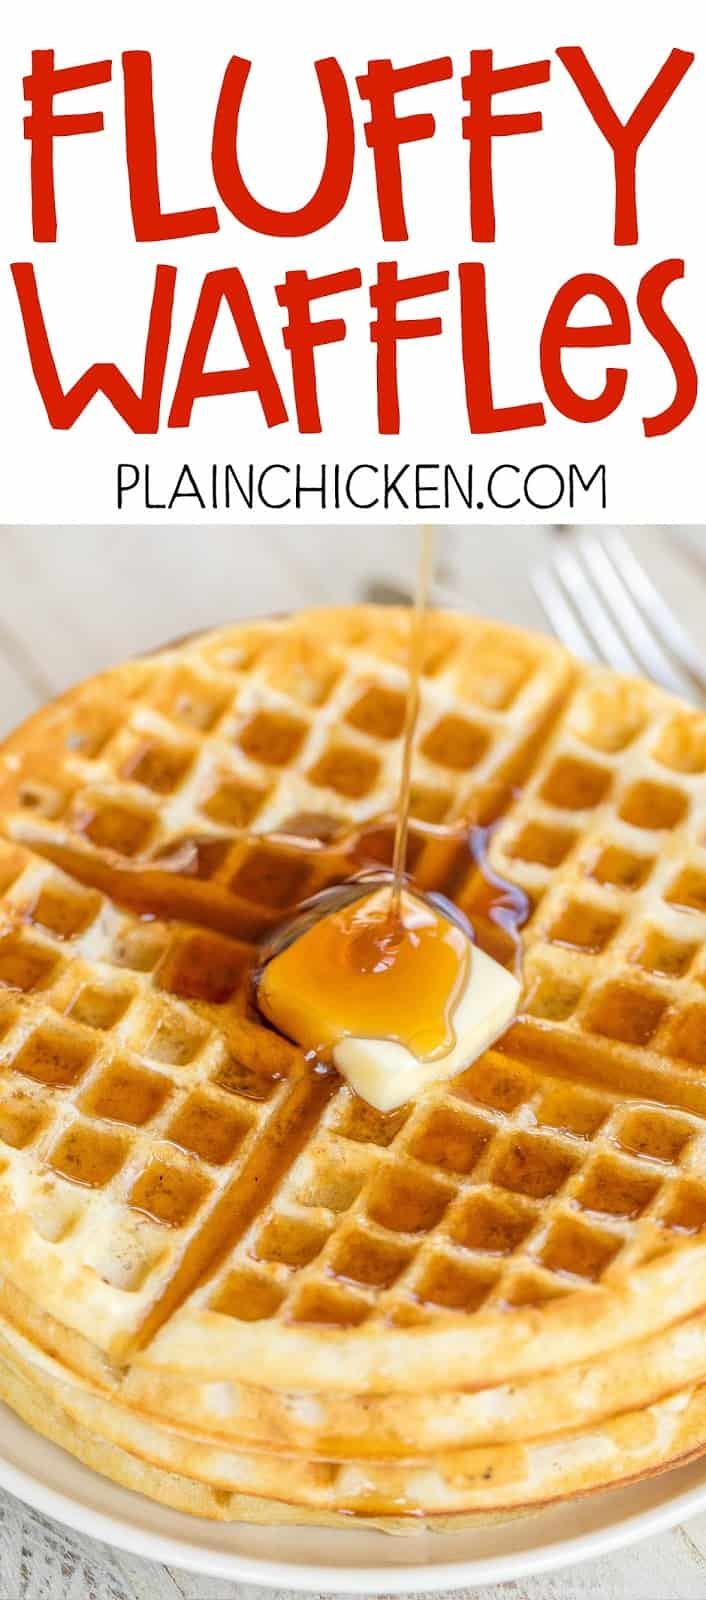 Fluffy Waffles - seriously the most DELICIOUS waffles EVER!!! Better than the Waffle House! I promise!! SO easy to make. Can freeze leftover waffles for a quick breakfast later. Flour, baking powder, salt, eggs, milk and oil. Just add butter and maple syrup for a delicious breakfast!